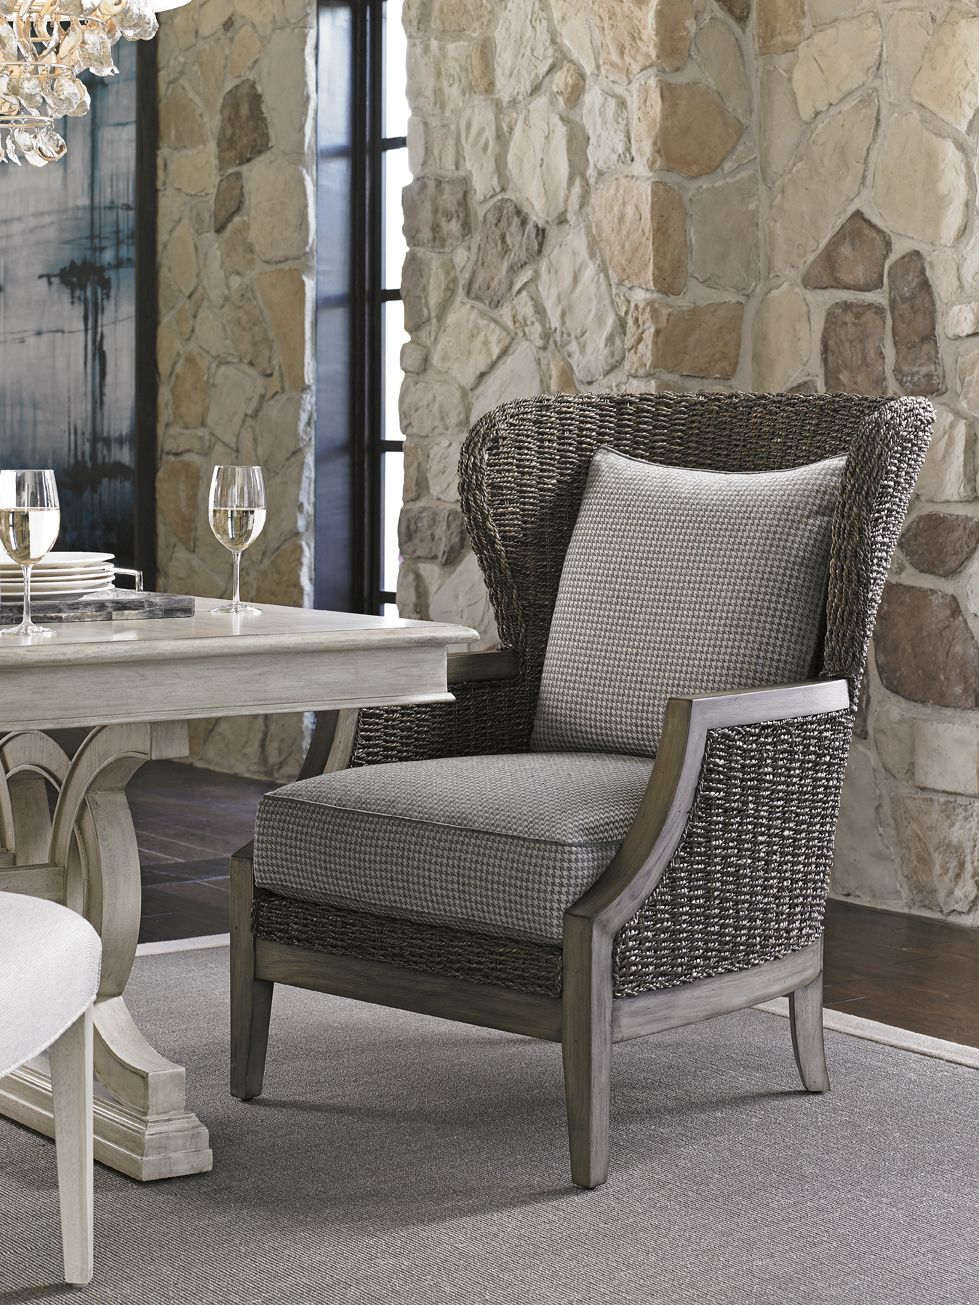 Weu0027re Definitely Ready To Relax With A Glass Of Vino In This Incredibly  Comfortable Lexington Oyster Bay Seaford Chair; Find It At West Coast  Living!